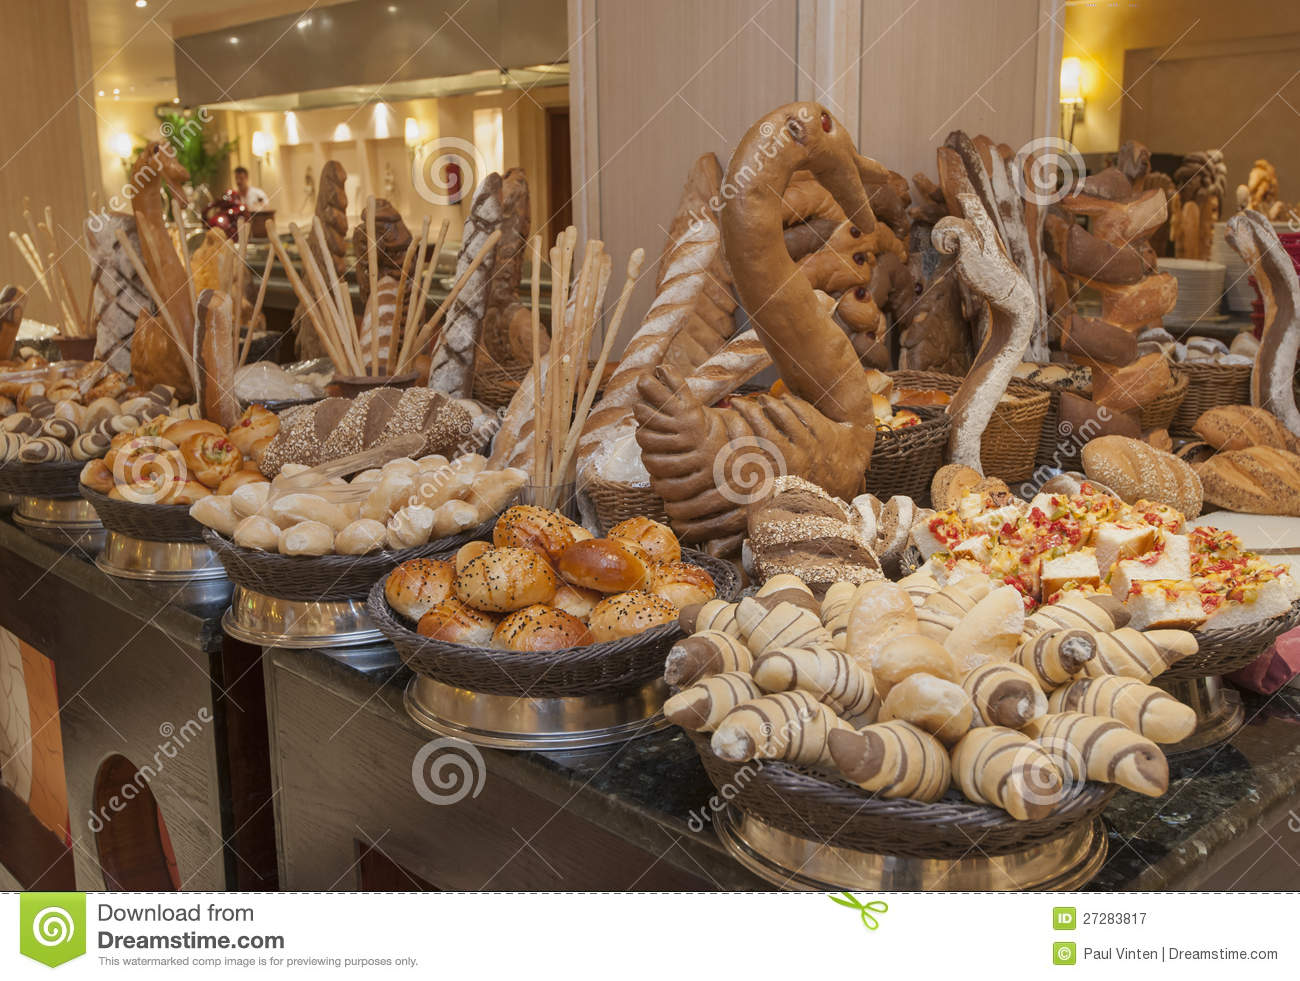 Bread Display At A Hotel Buffet Stock Image Image 27283817 : bread display hotel buffet 27283817 from www.dreamstime.com size 1300 x 981 jpeg 203kB